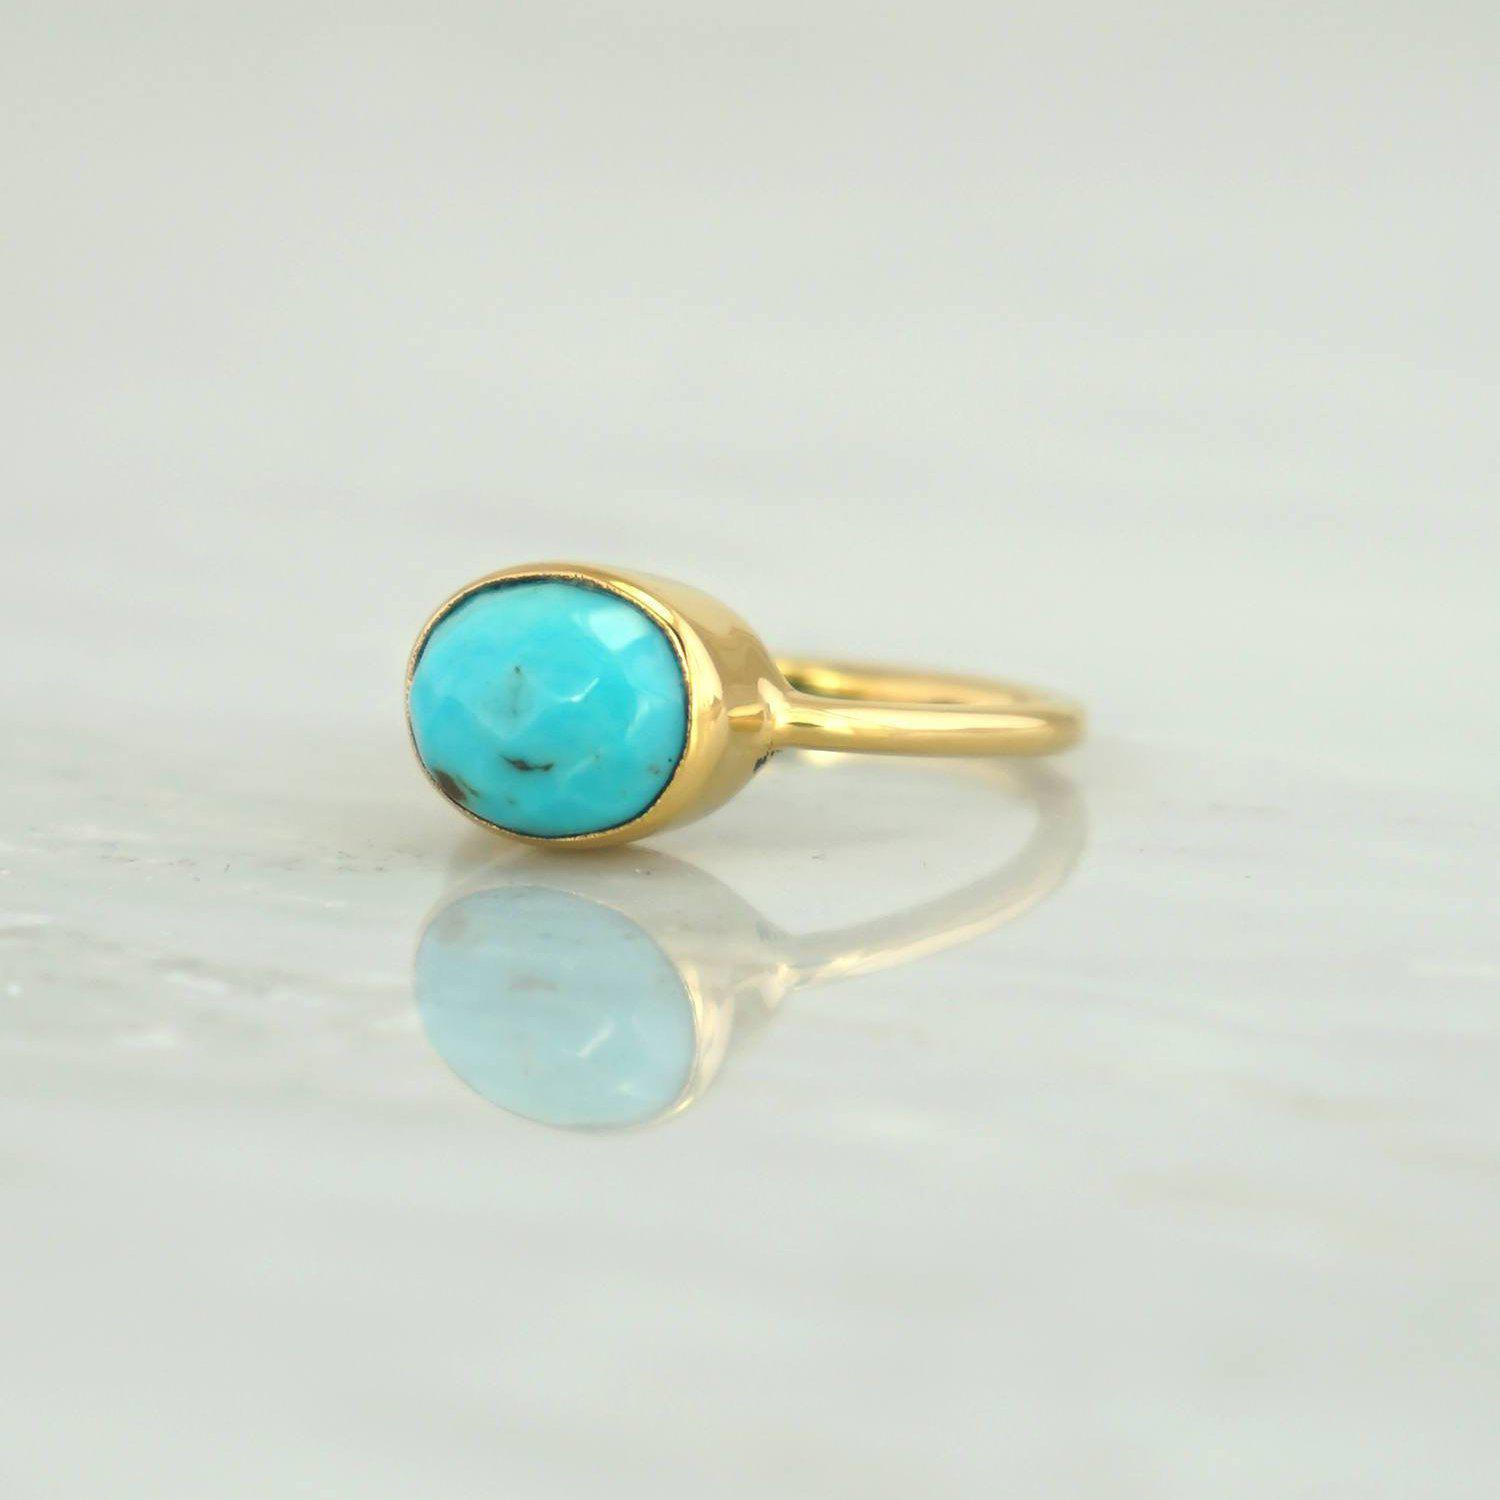 Jane Austen ring, Turquoise Ring, Oval Turquoise Ring, Sleeping Beauty Ring, December birthstone, Silver Ring, 925 Silver,Everyday Ring